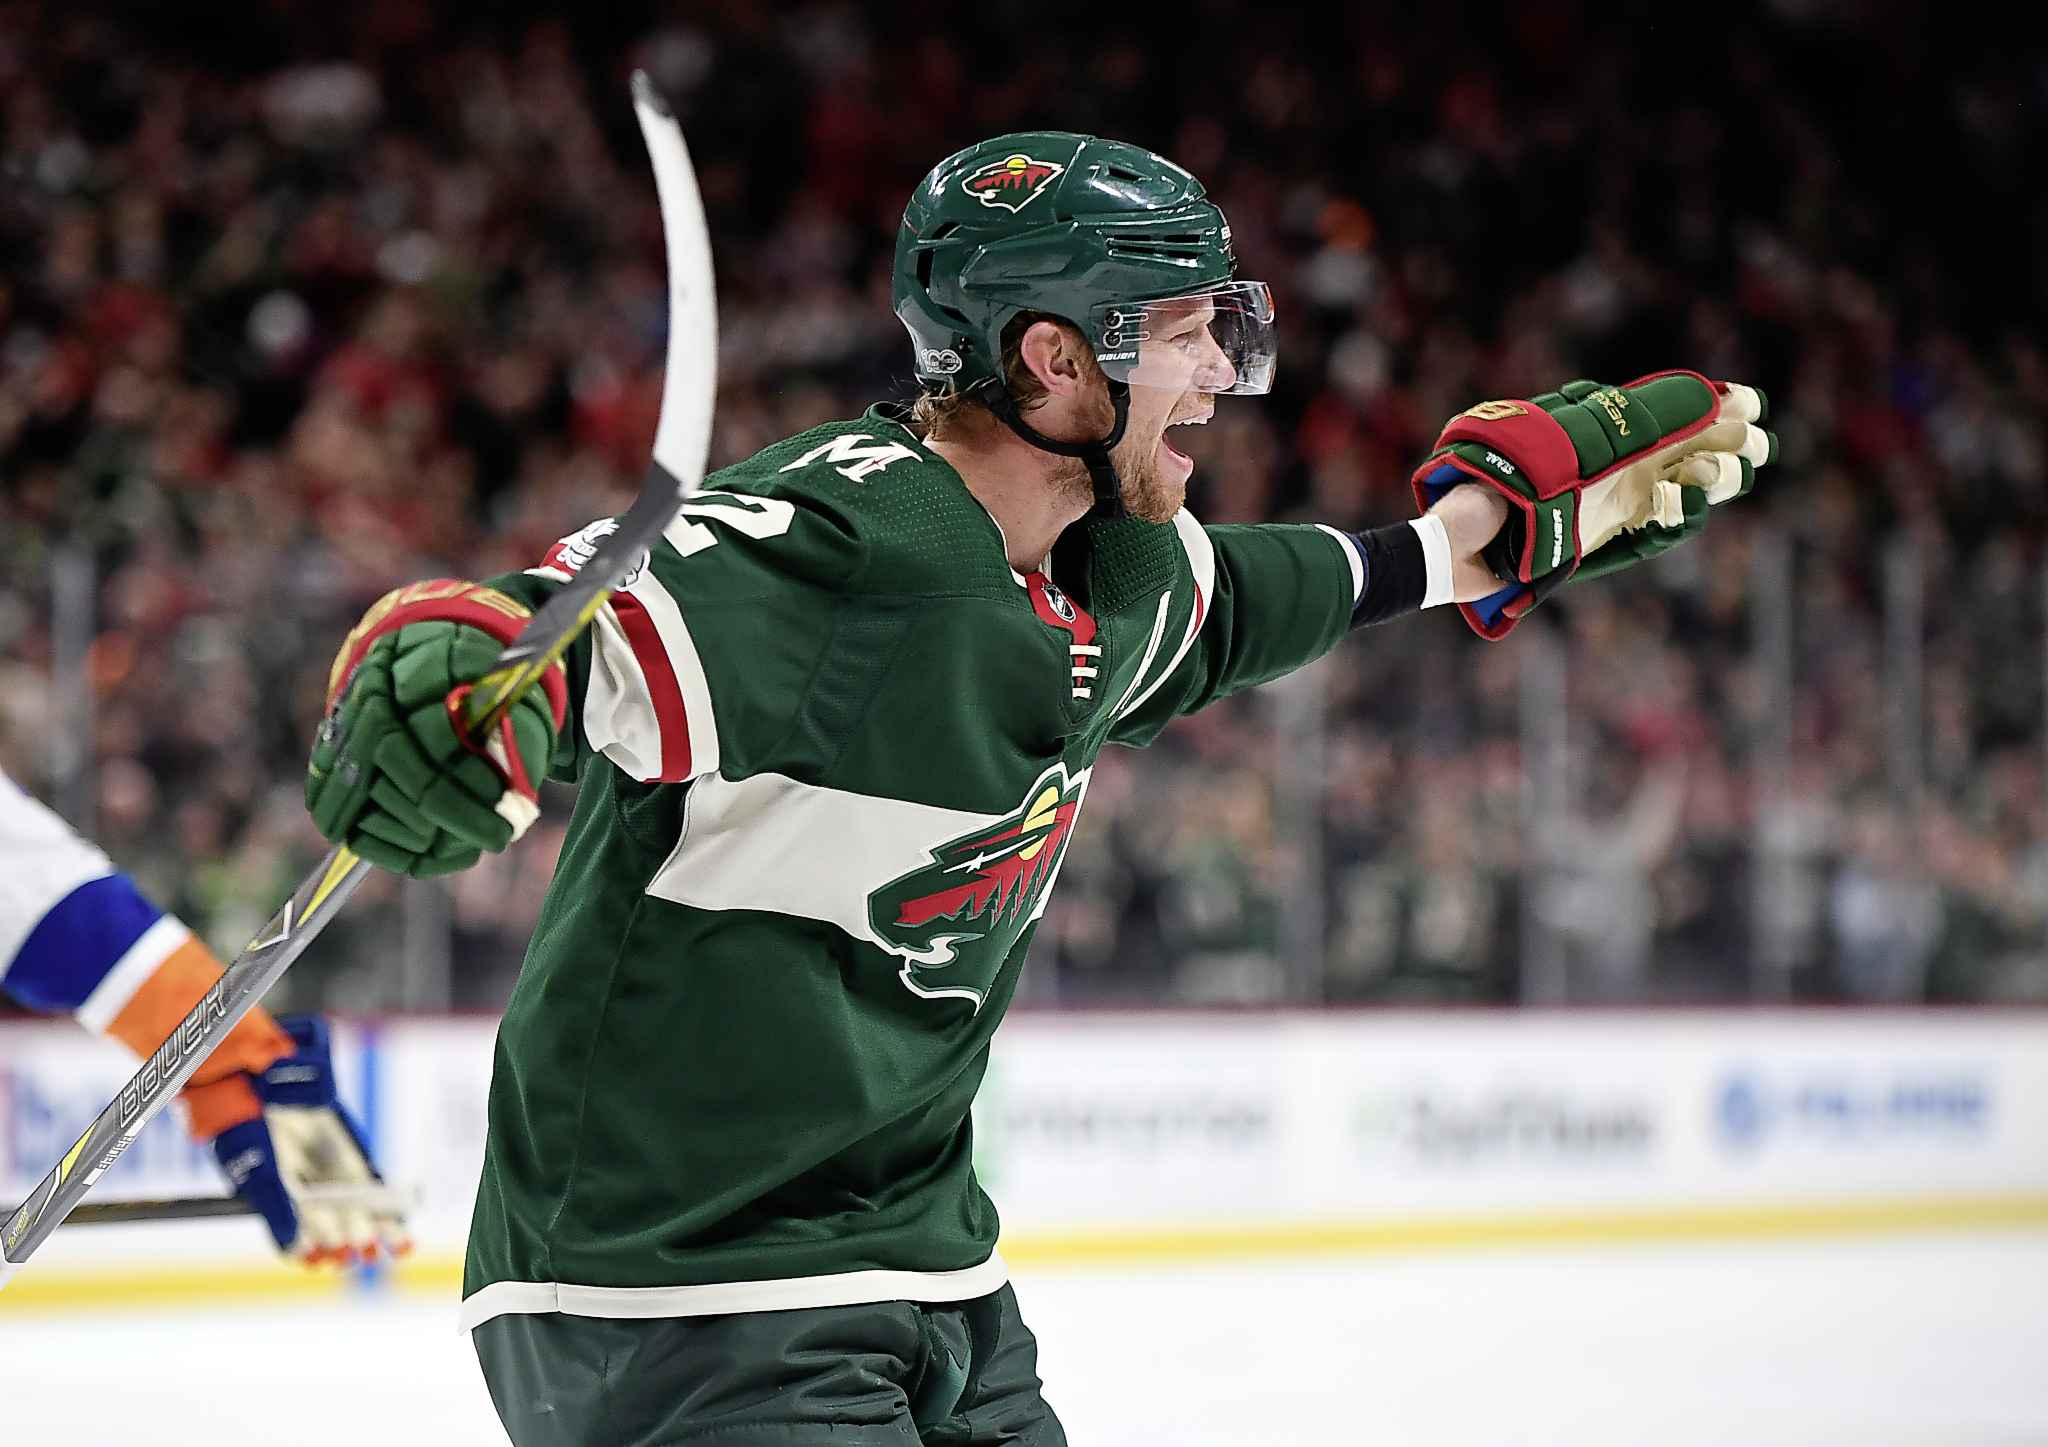 The Minnesota Wild's Eric Staal (12) joins the celebration after Luke Kunin, not pictured, scored his first NHL career goal in the second period against the New York Islanders on Thursday, Oct. 26, 2017, at Xcel Energy Center in St. Paul, Minn. (Aaron Lavinsky/Minneapolis Star Tribune/TNS)